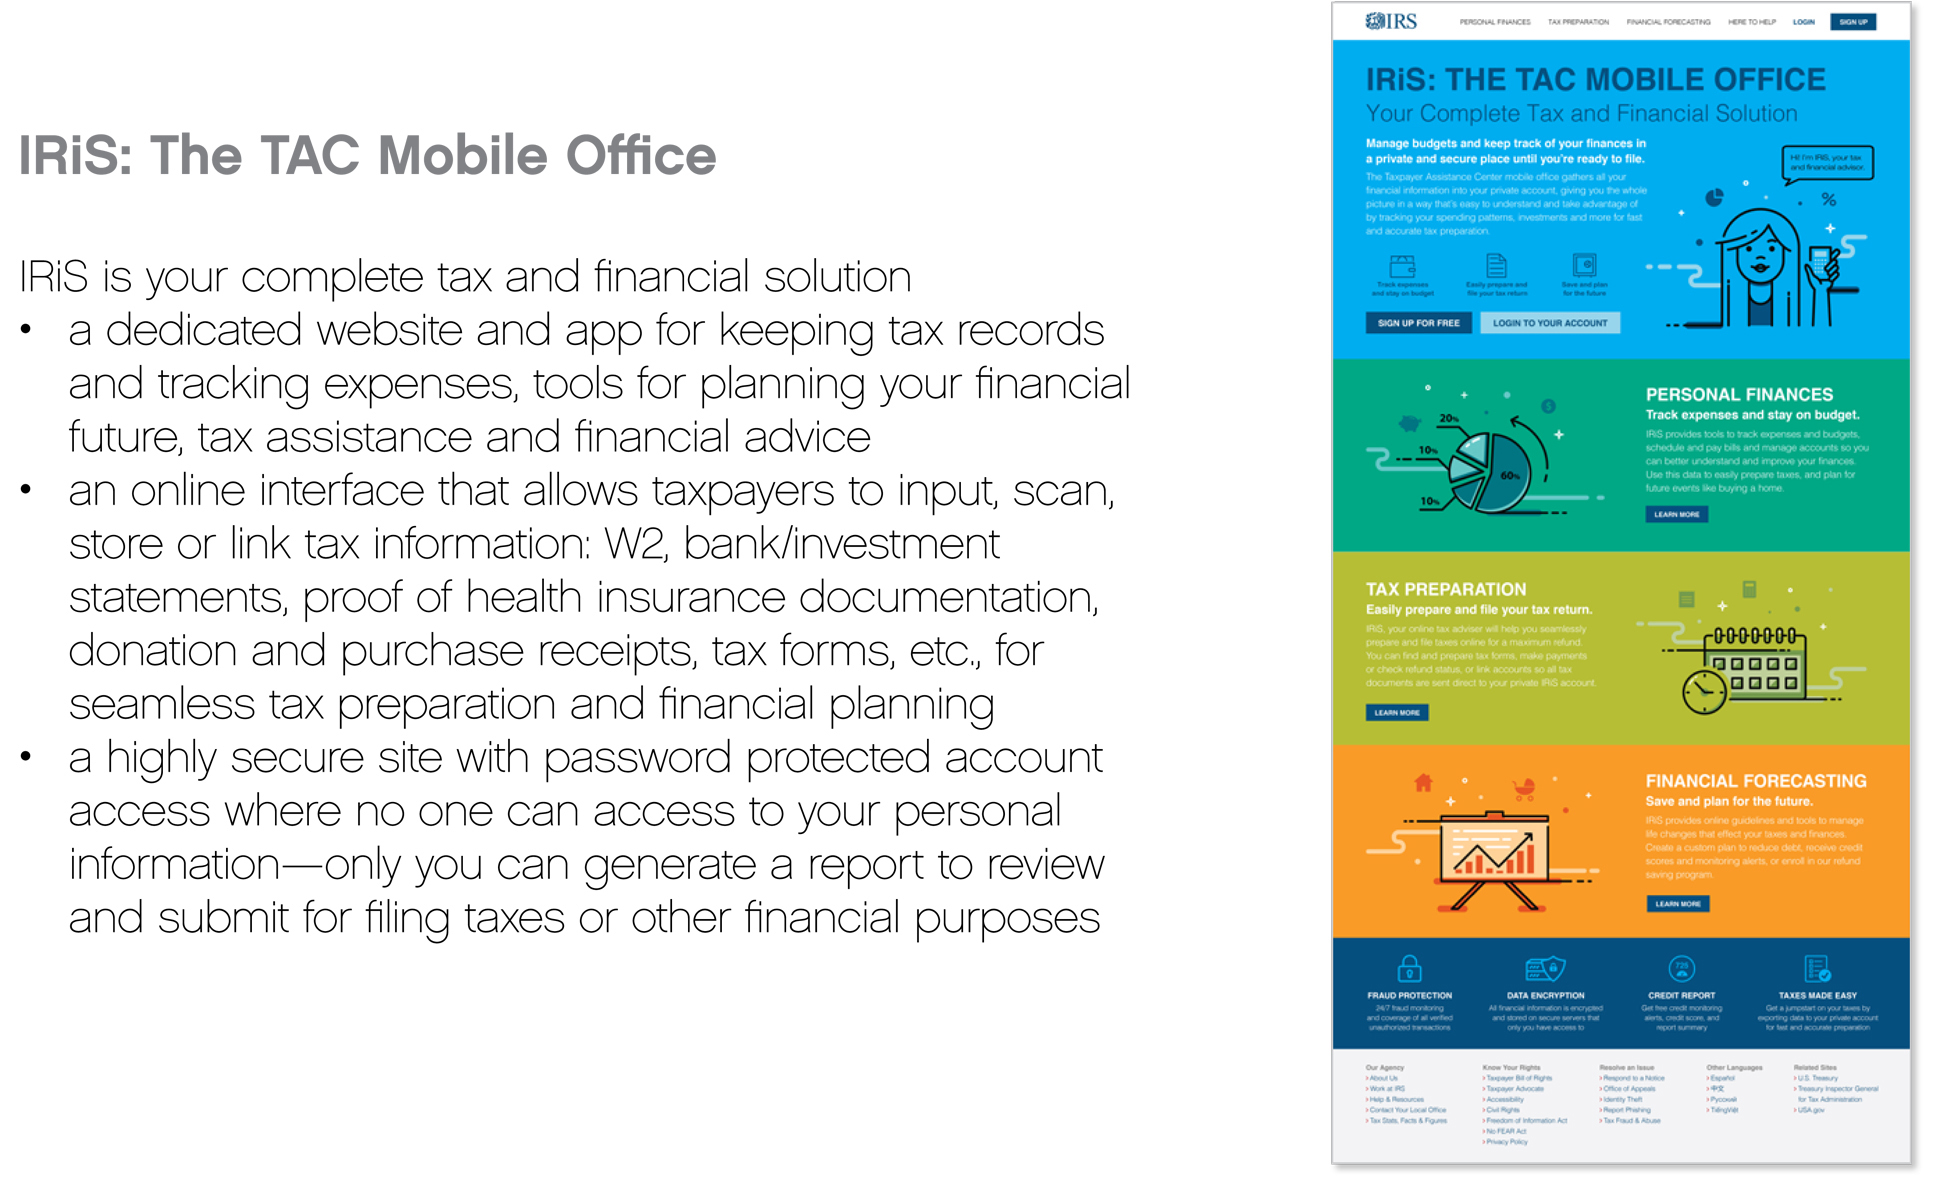 A page from a tax design challenge submission. The desktop is highlighted and key features are listed: personal finances, tax preparation, and financial forecasting.